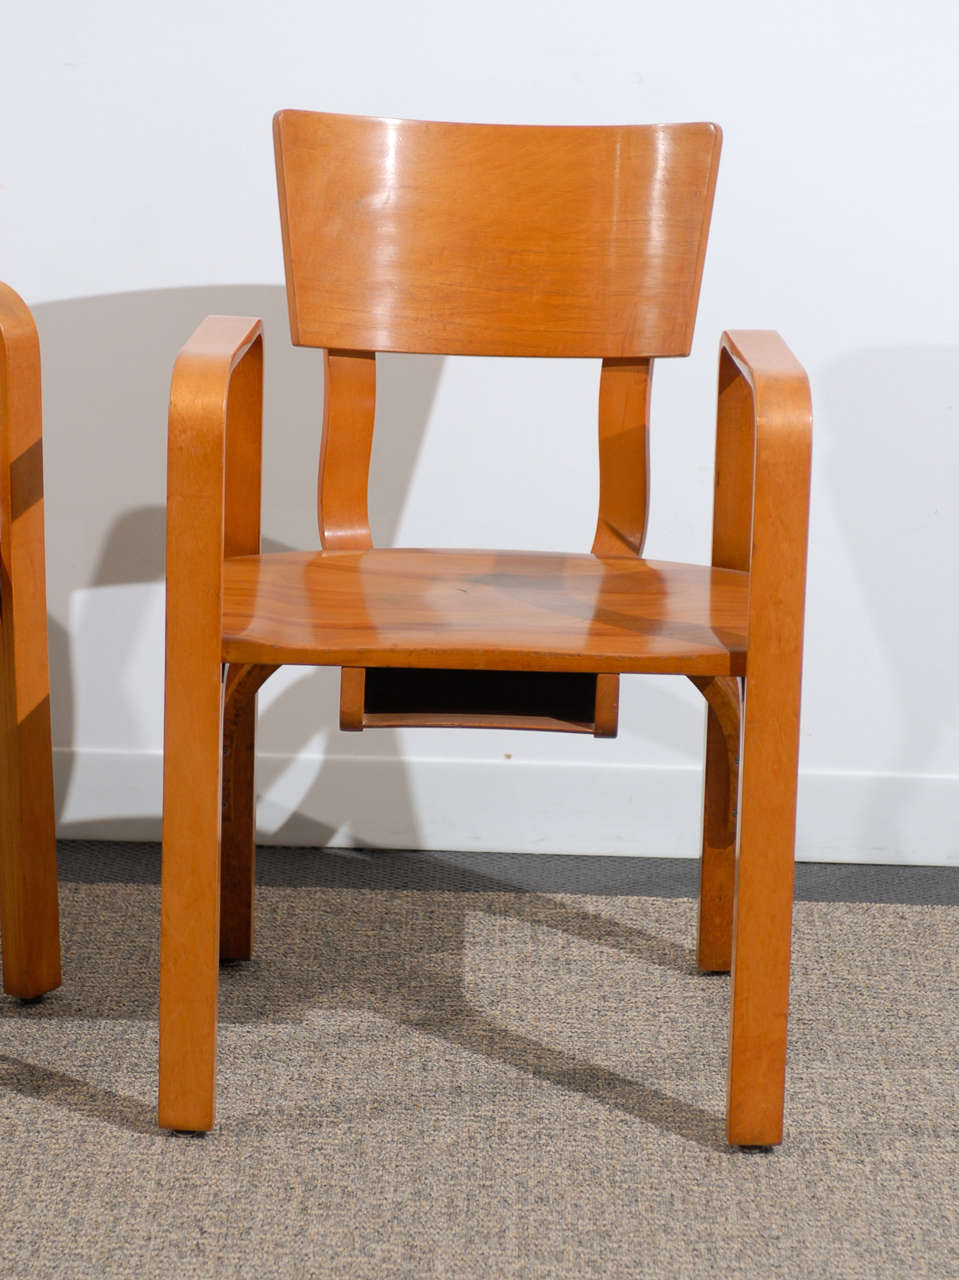 Bent Plywood Chair - An unusual pair of bent plywood arm chairs by thonet 2